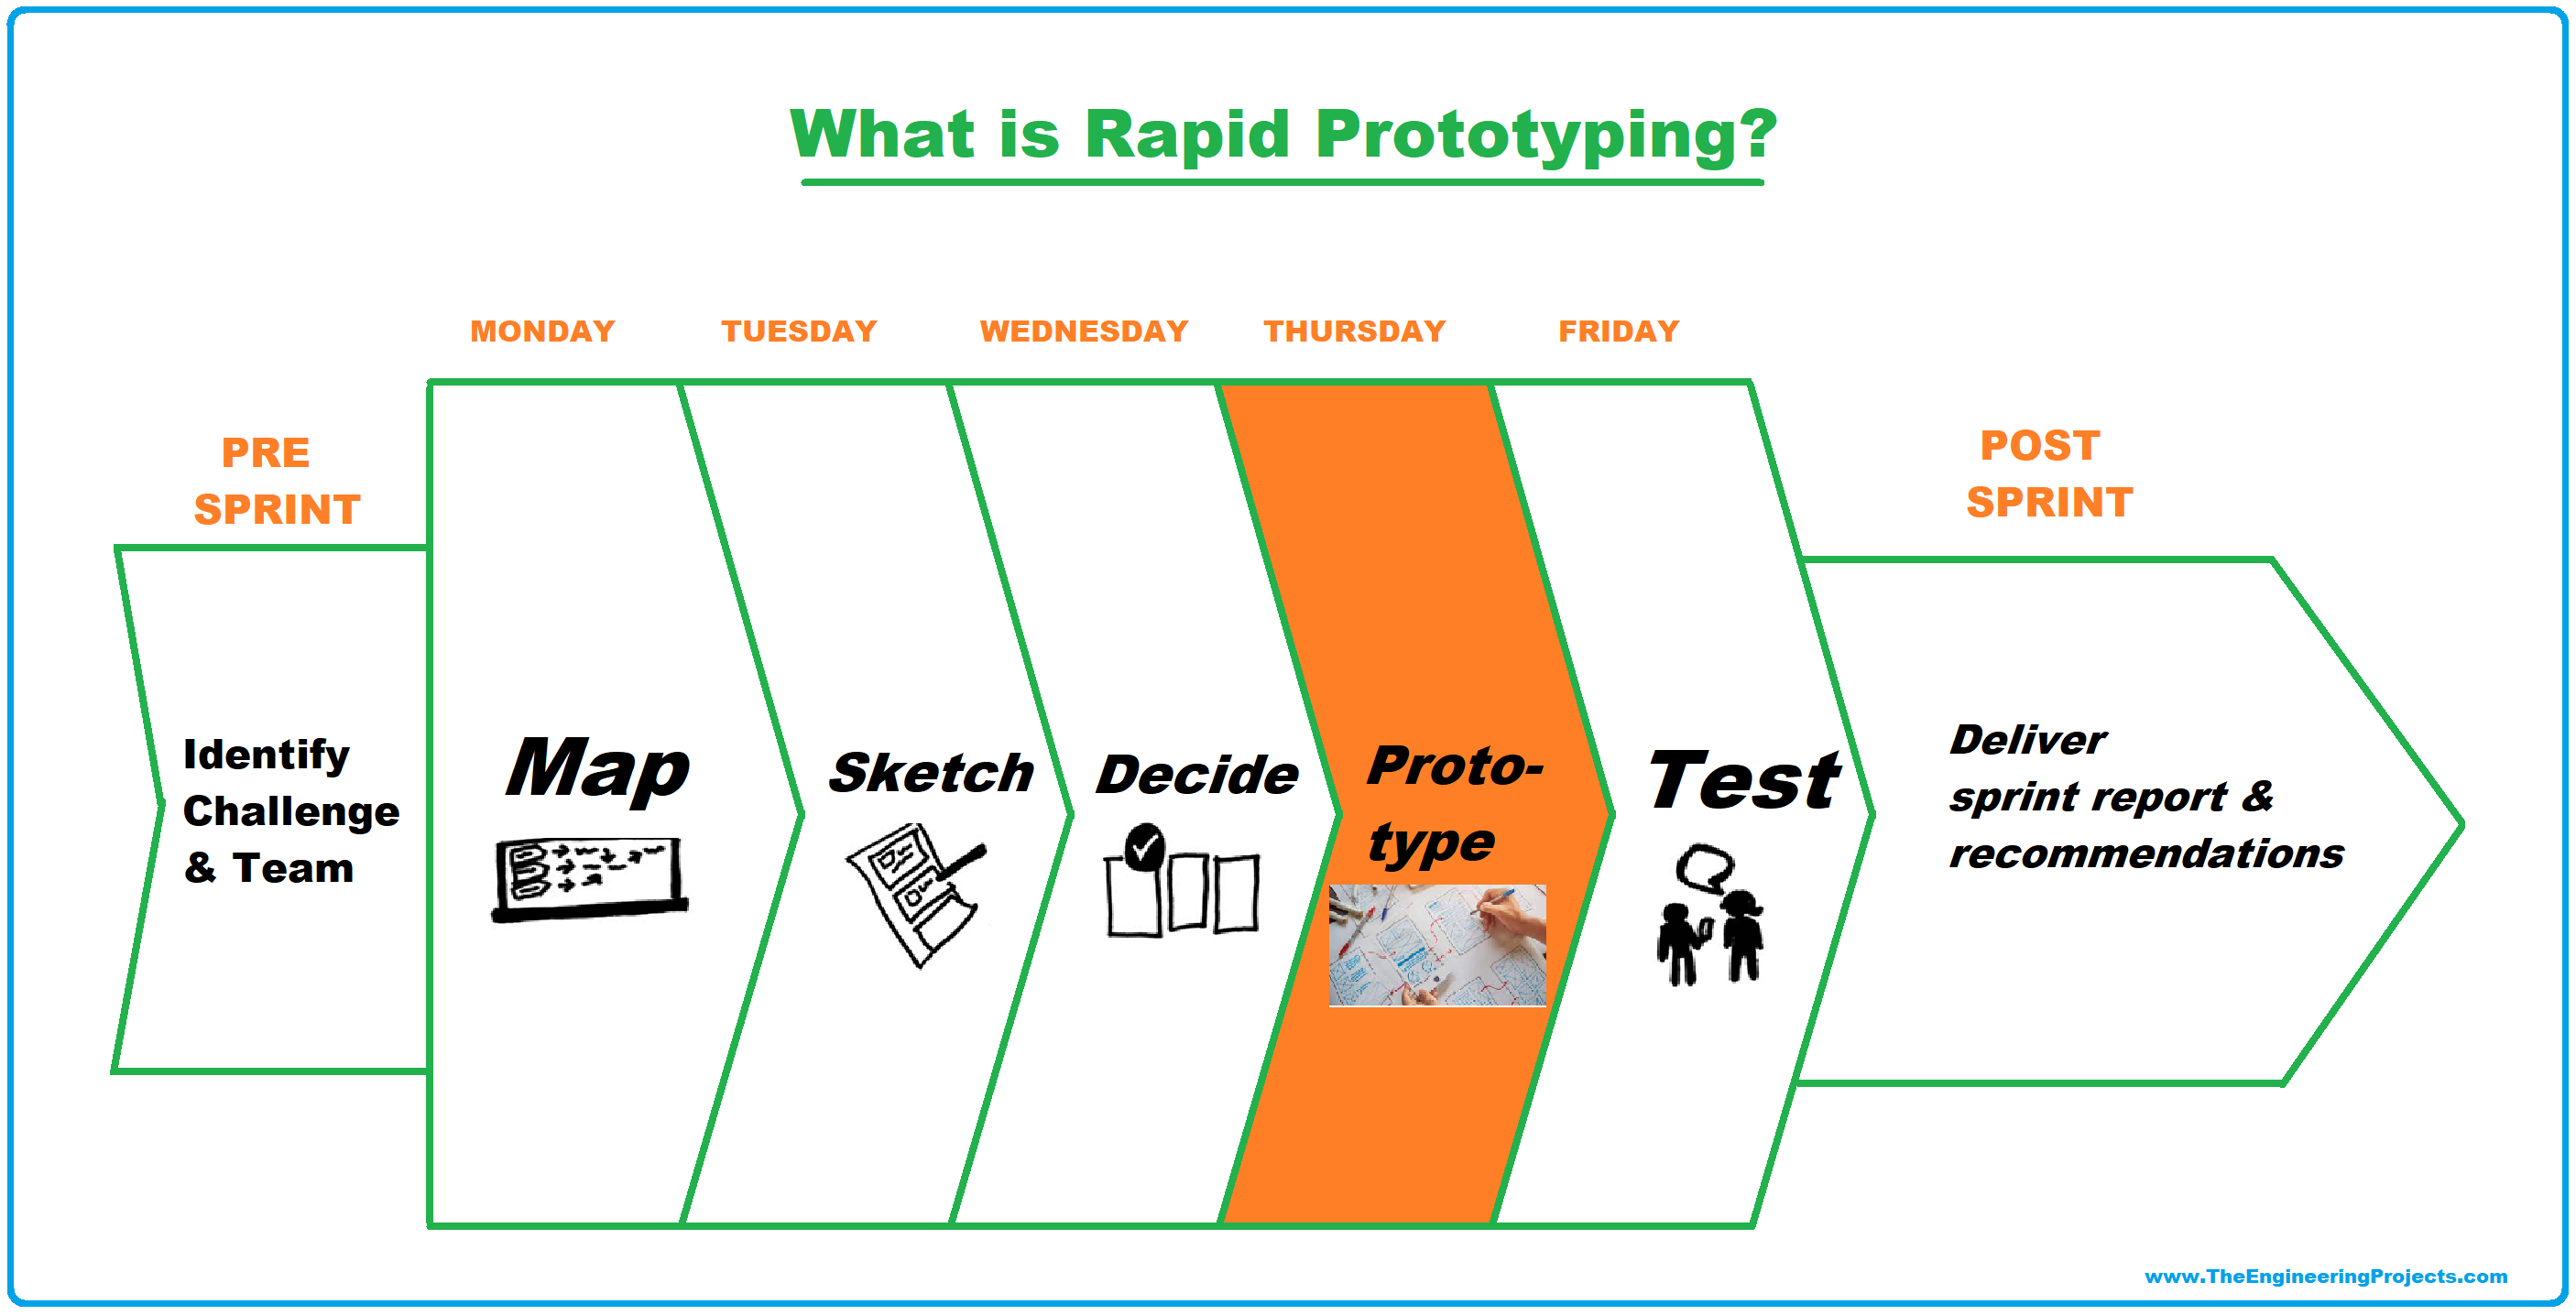 Rapid Prototyping, what is Rapid Prototyping, Rapid Prototype, what is Rapid Prototype, What is a Prototyping, Rapid prototyping steps, rapid prototyping process, Example of Rapid Prototyping, Applications of Rapid Prototyping